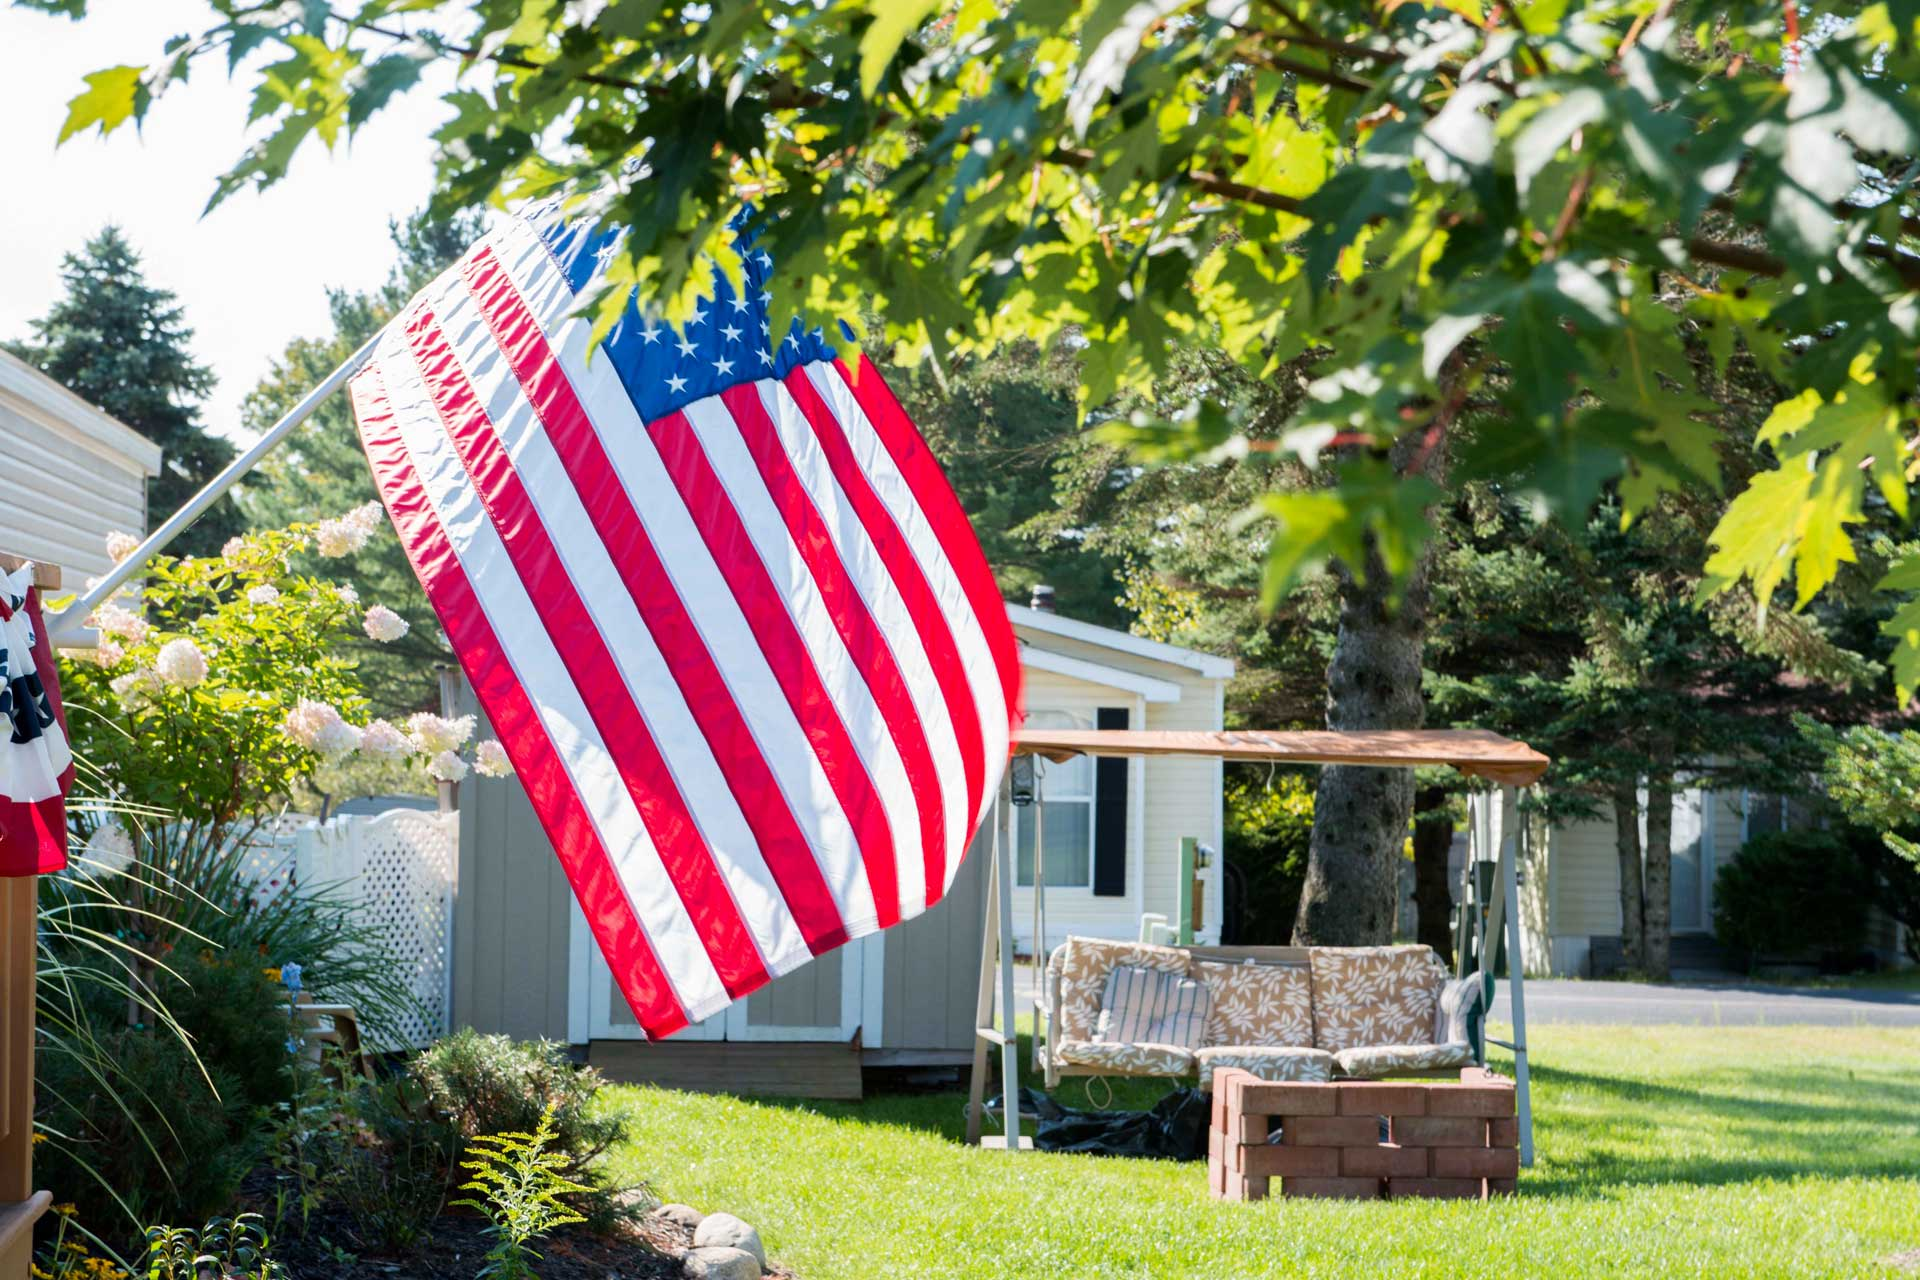 Attractive yard in a resodent-owned community with U.S. flag in foreground